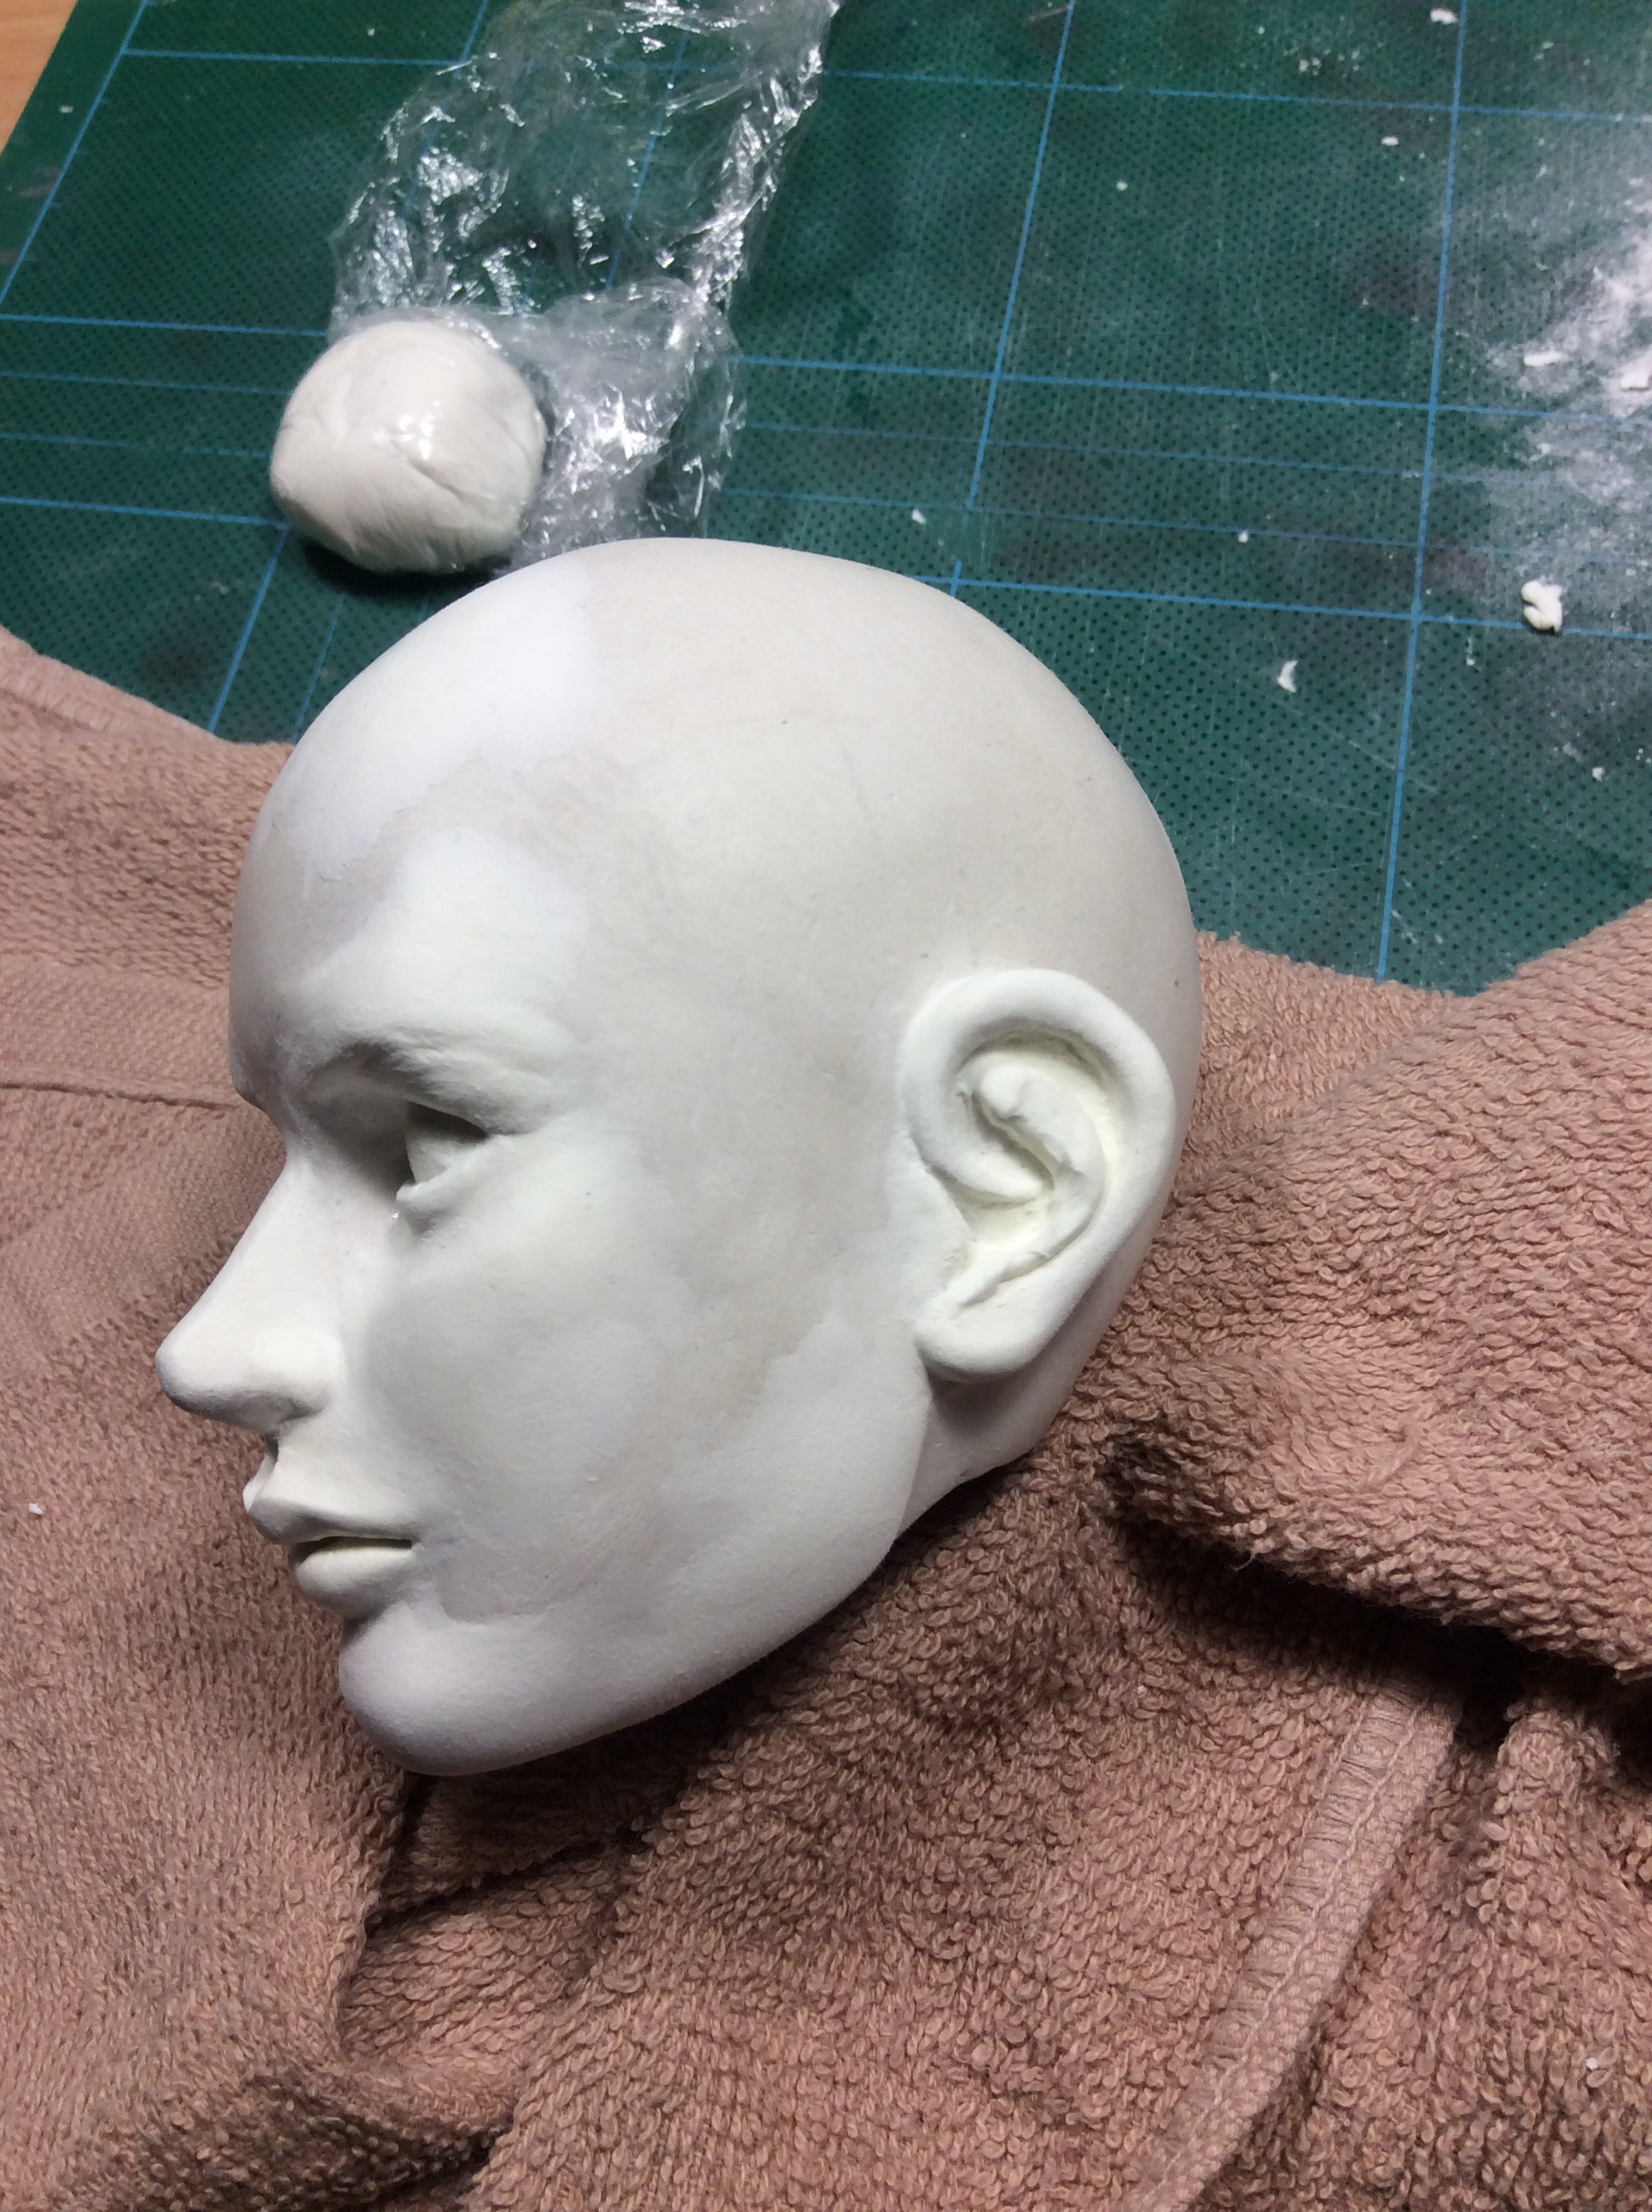 jemse---my-first-doll-head-making-progress-diary-part-3_31602563883_o